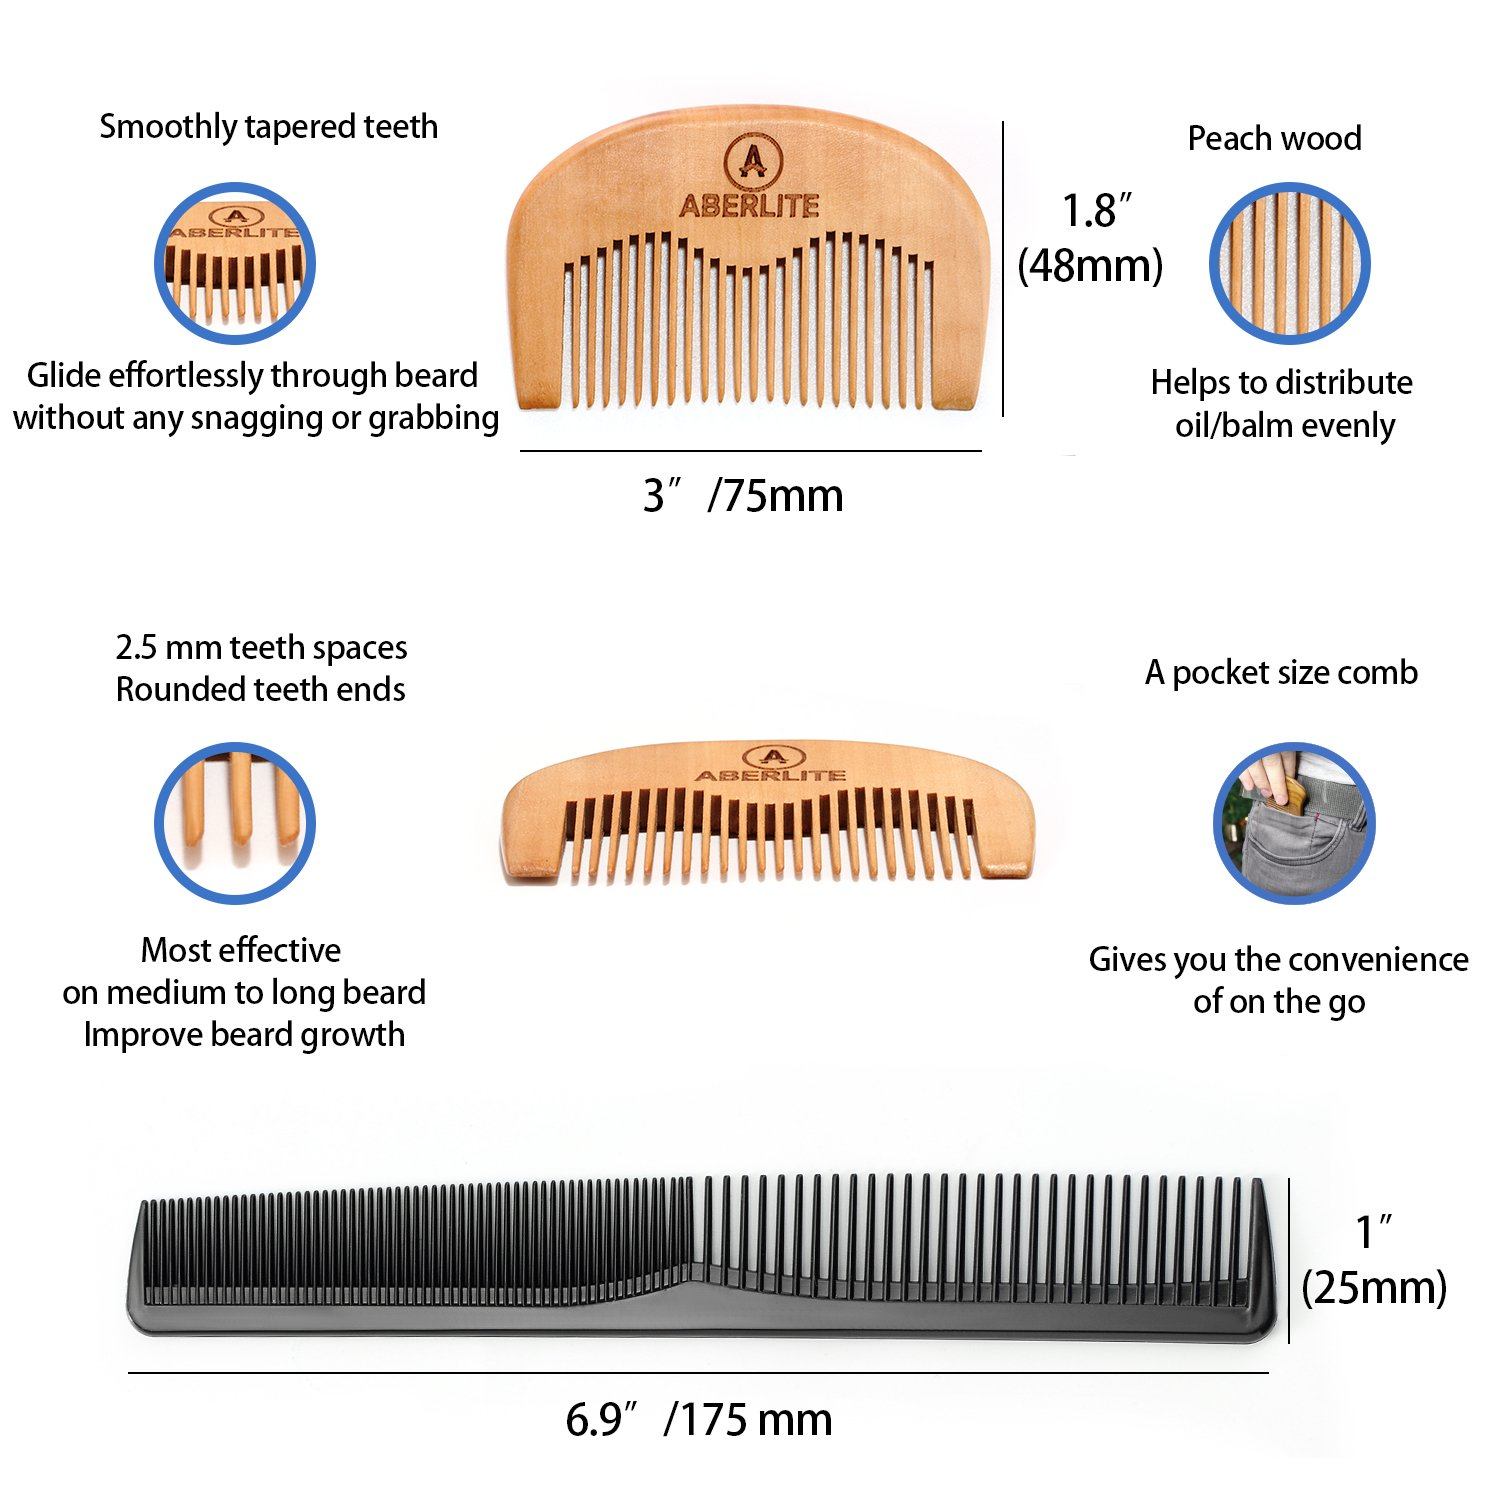 Beard Scissors Kit for Men (5 pcs) | 5'' Professional Beard/Hair Scissors (Japanese Stainless Steel), Travel Size Precision Beard/Mustache Scissor, Pocket Wood Comb, Master Barber Comb, and PU Case Set by Aberlite (Image #7)